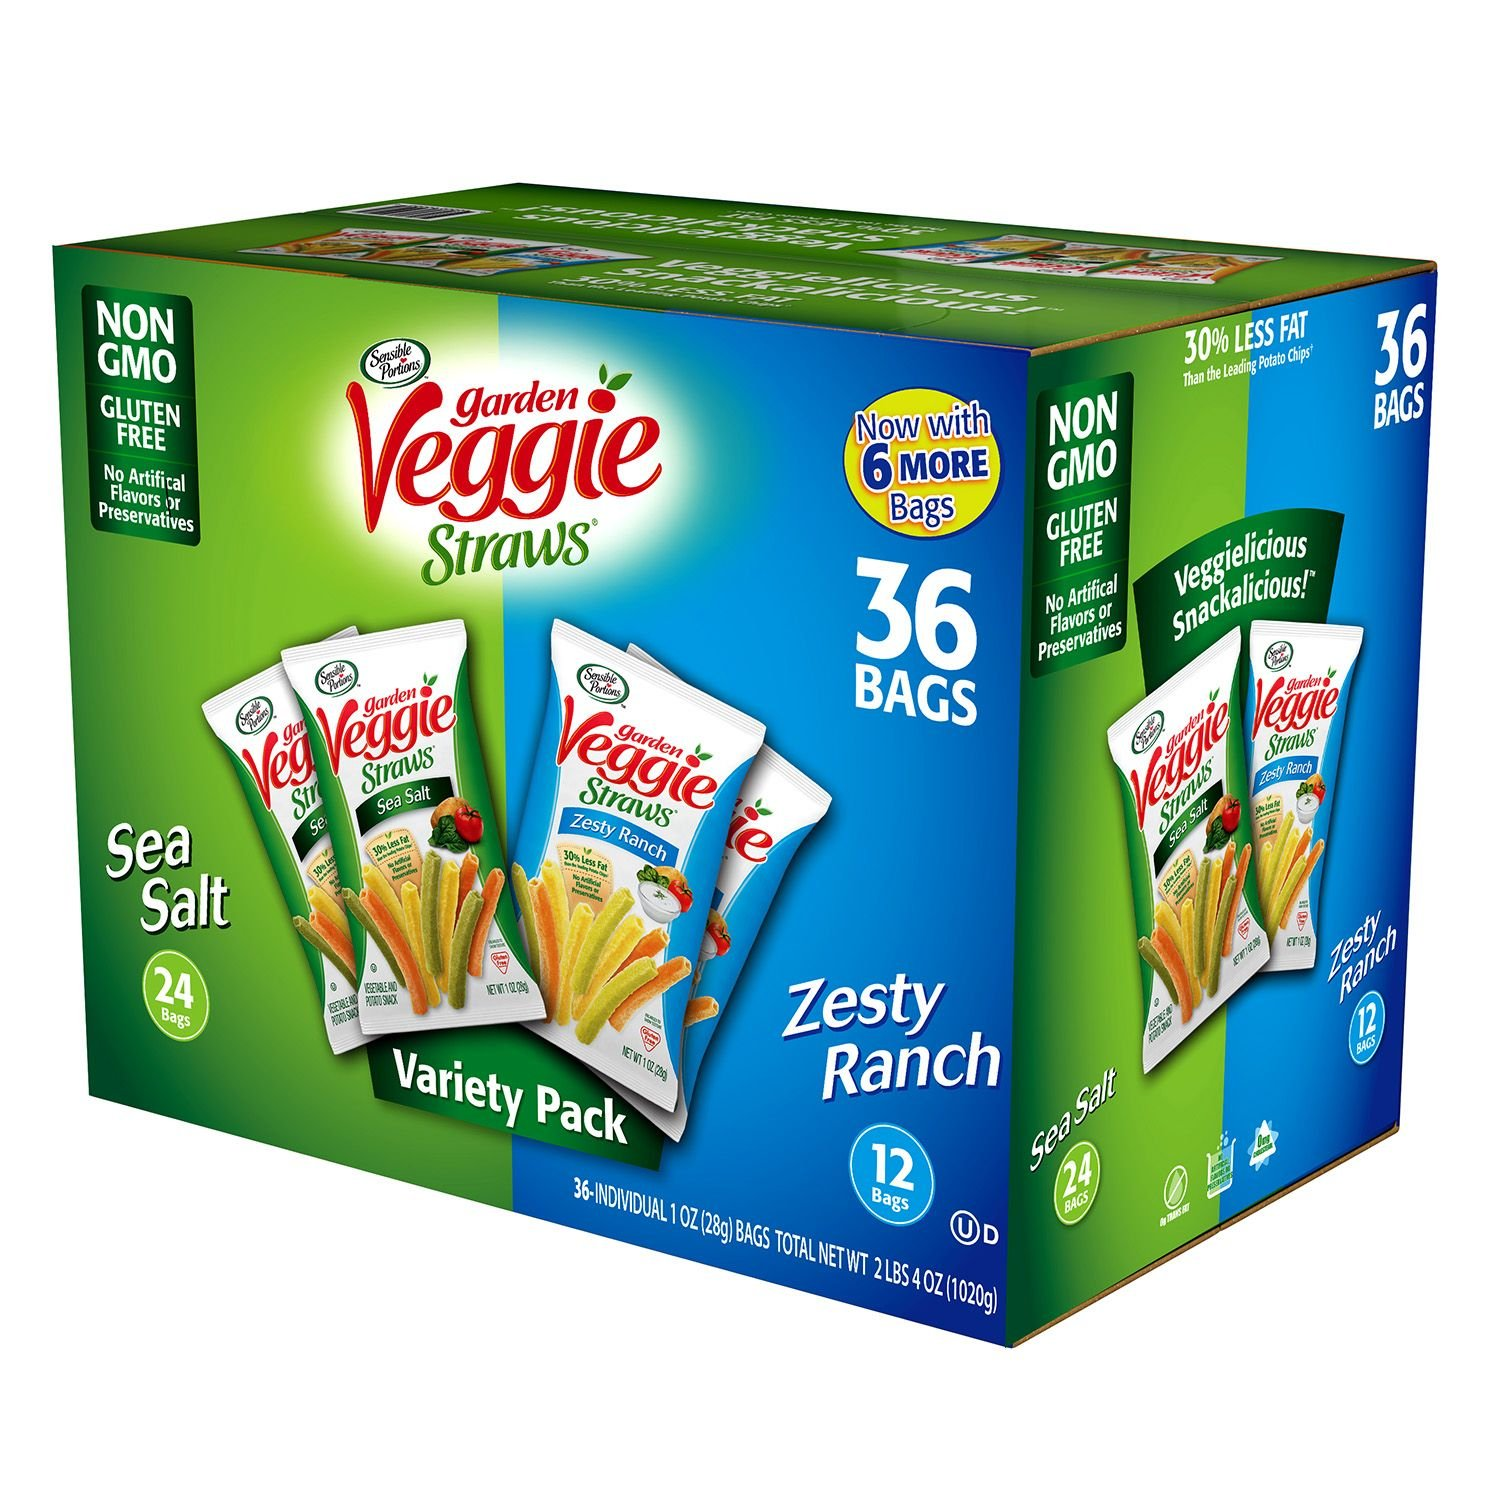 Sensible Portions Garden Veggie Snack Straws Shape Chips Variety Pack, 30 Count by Sensible Portions